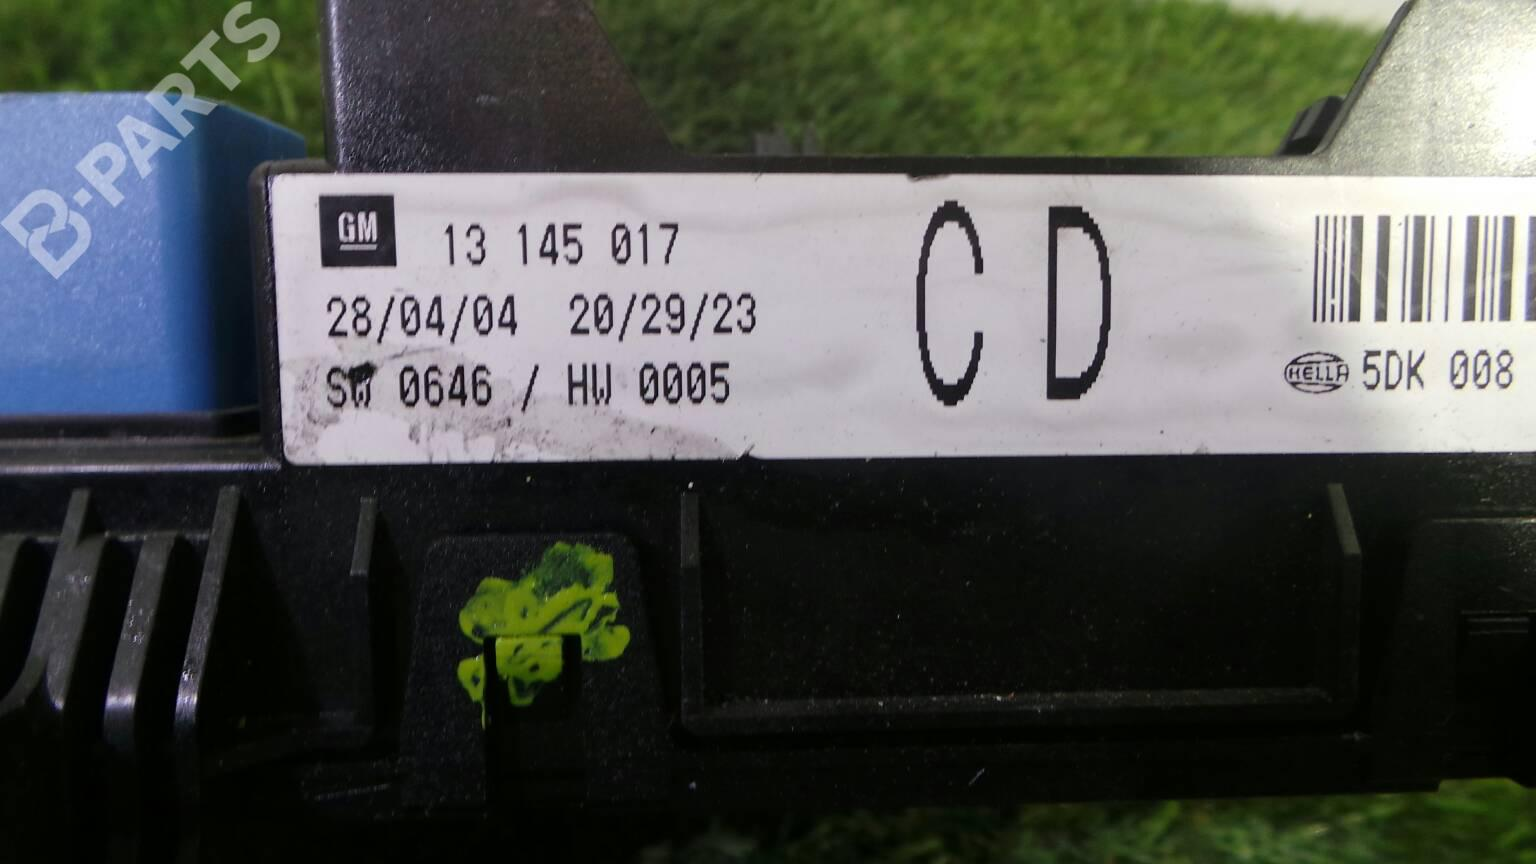 hight resolution of fuse box 13 145 017 opel astra h a04 1 7